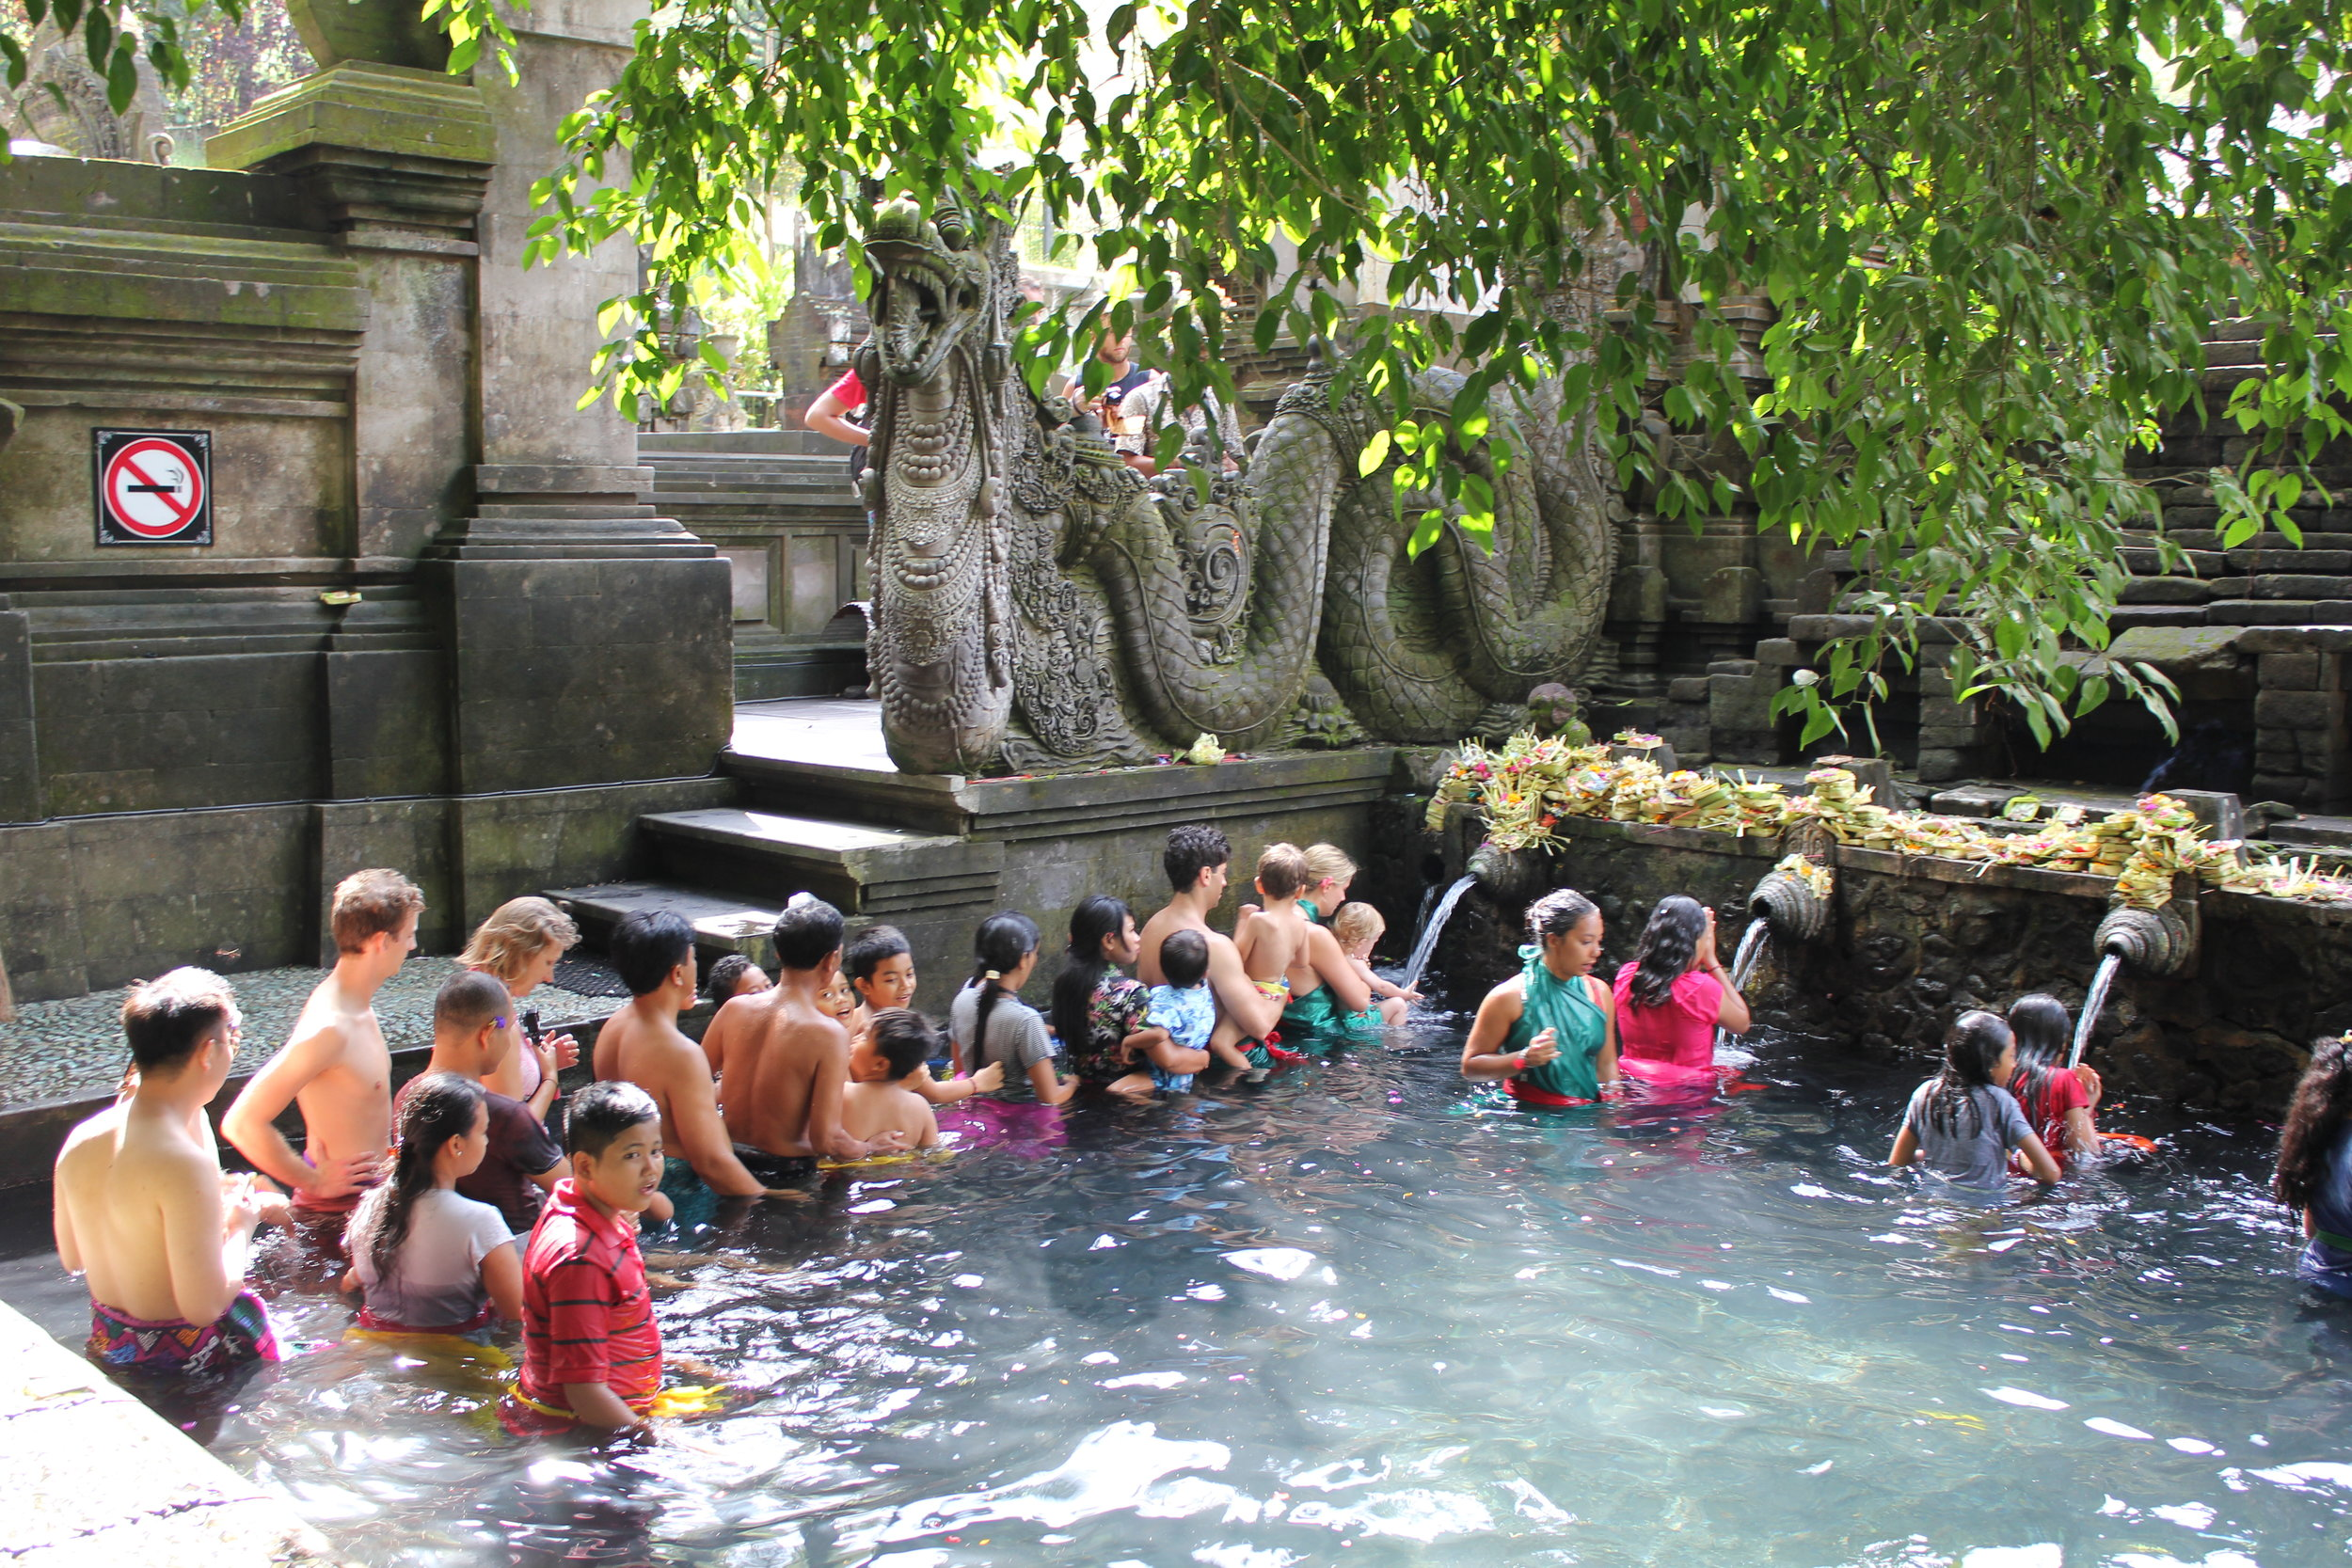 People from all parts of the world bathe in the holy waters of Tirta Empul in Bali, one of the most beautiful temples I've been to in Asia